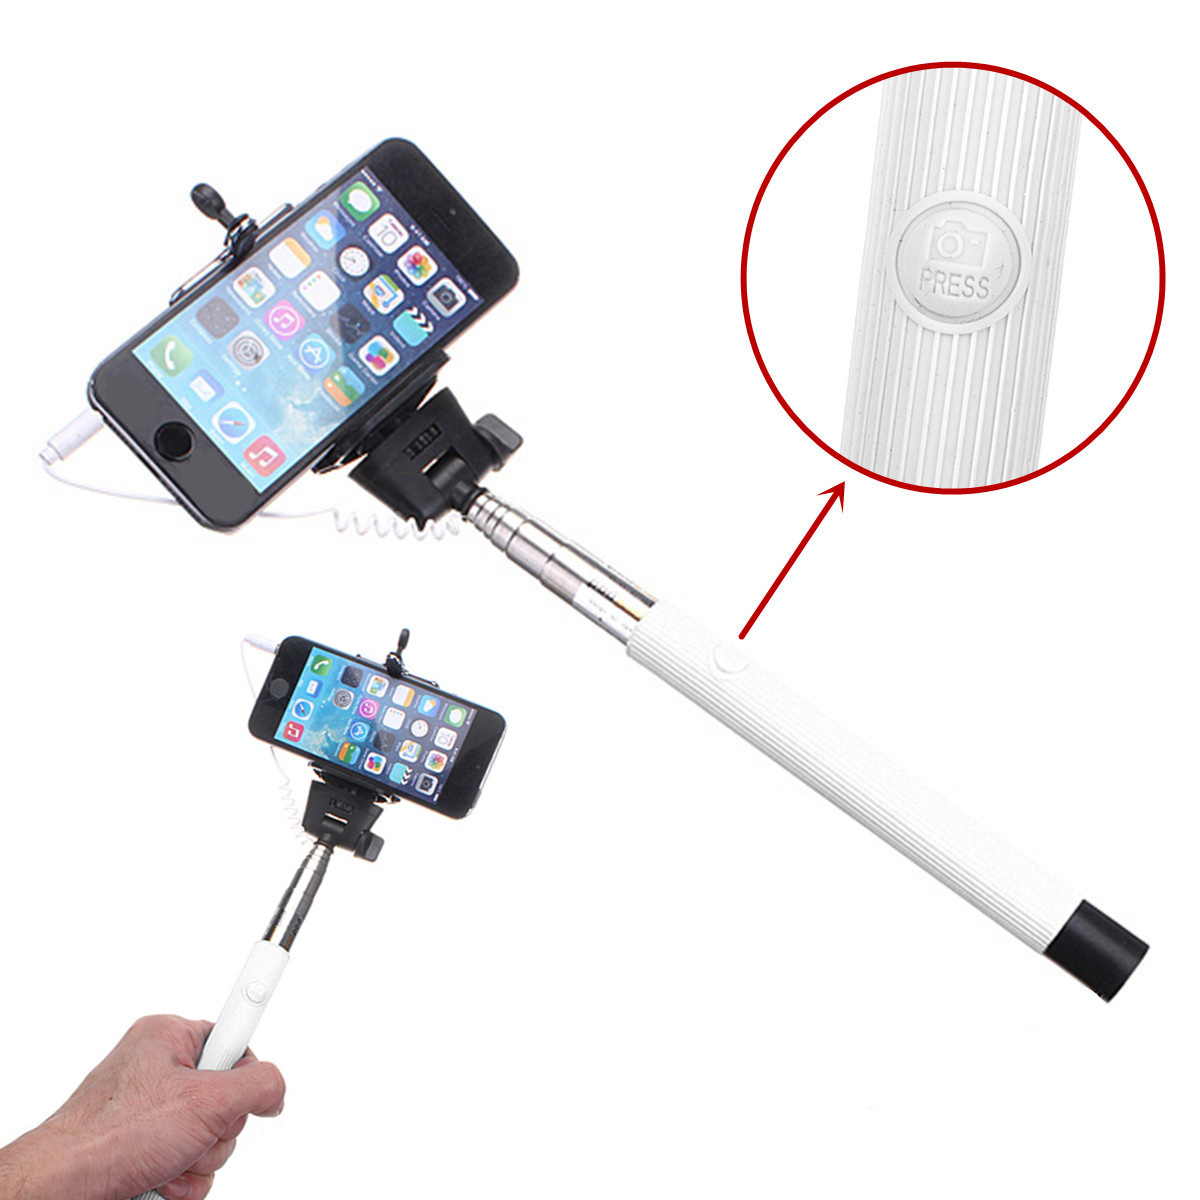 extensible remote monopod selfie stick for iphone samsung huawei sony lg nexu. Black Bedroom Furniture Sets. Home Design Ideas